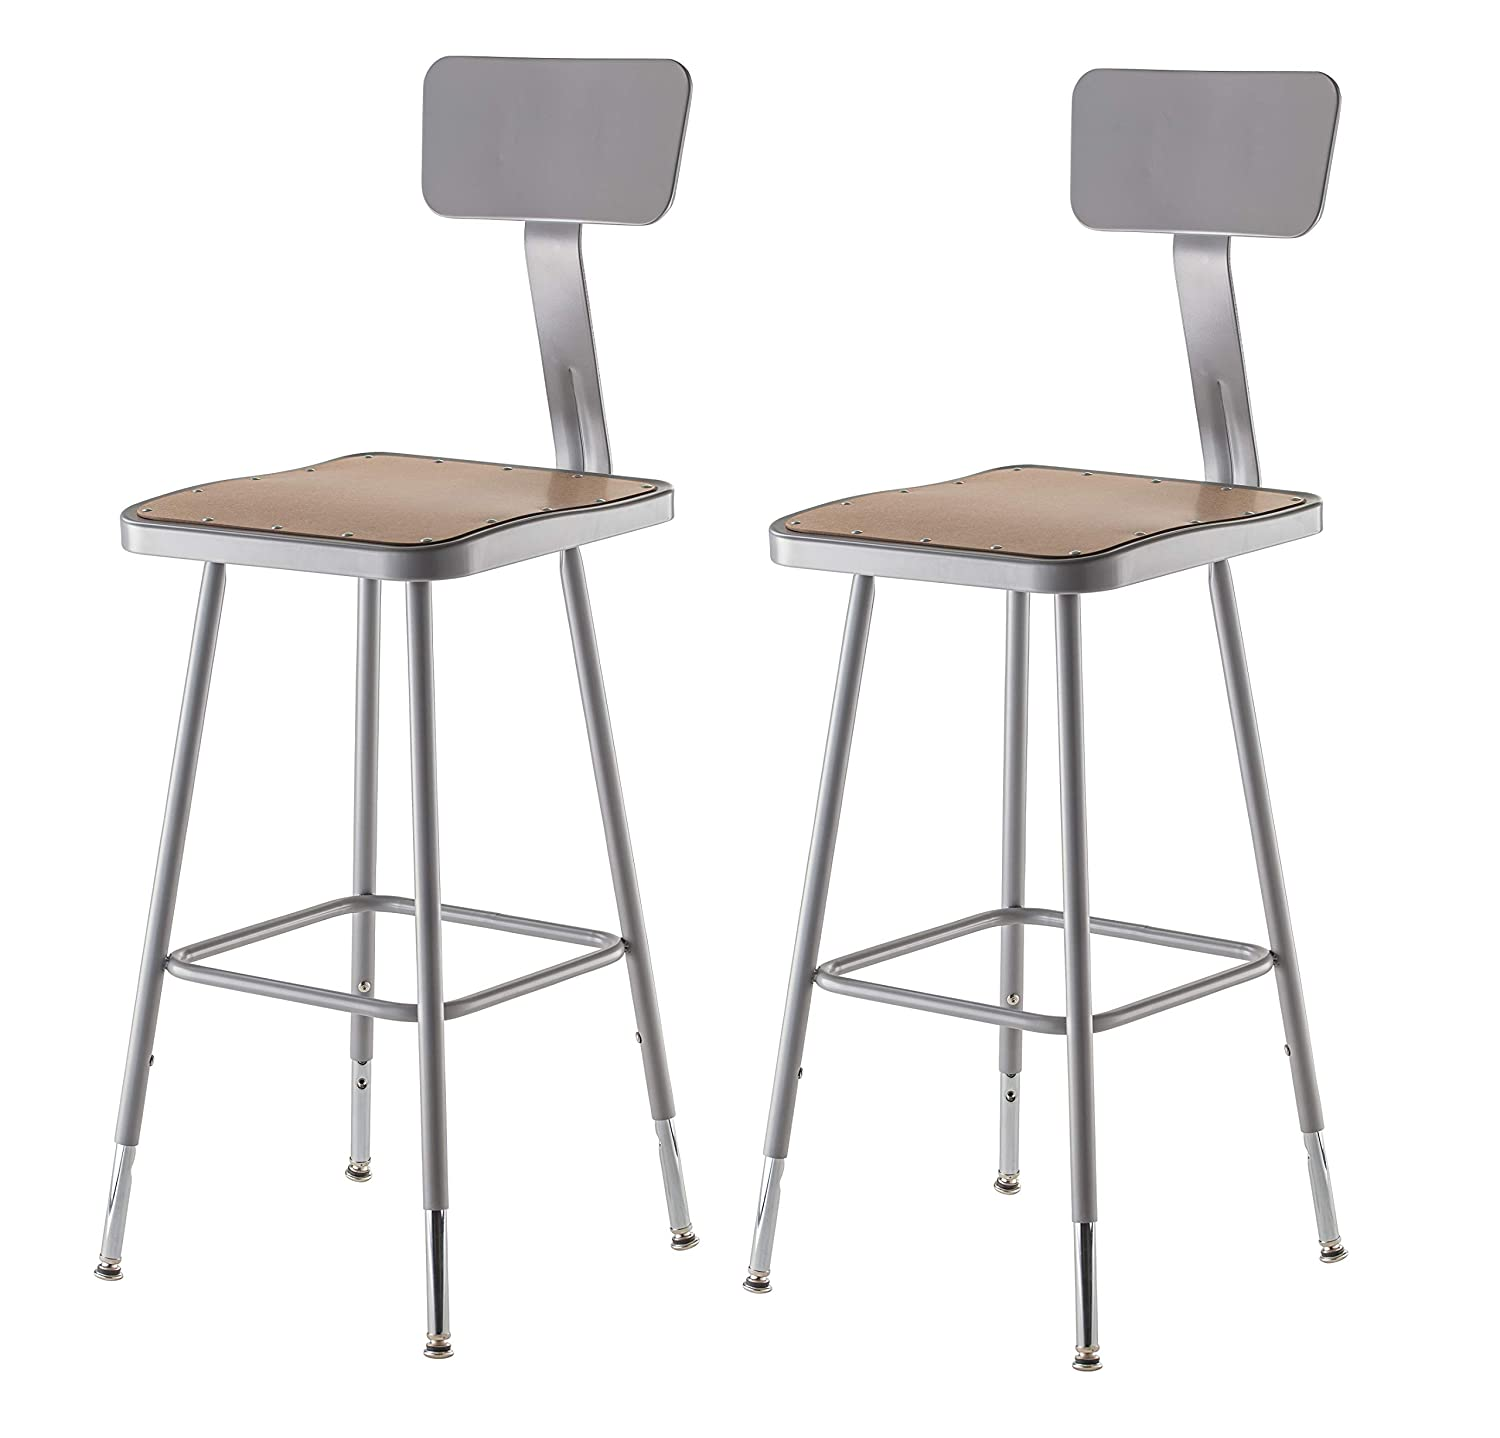 National Public Seating 6324HB CN Steel Stool with Square Hardboard Seat Adjustable and Backrest 25 33 Grey Pack of 2